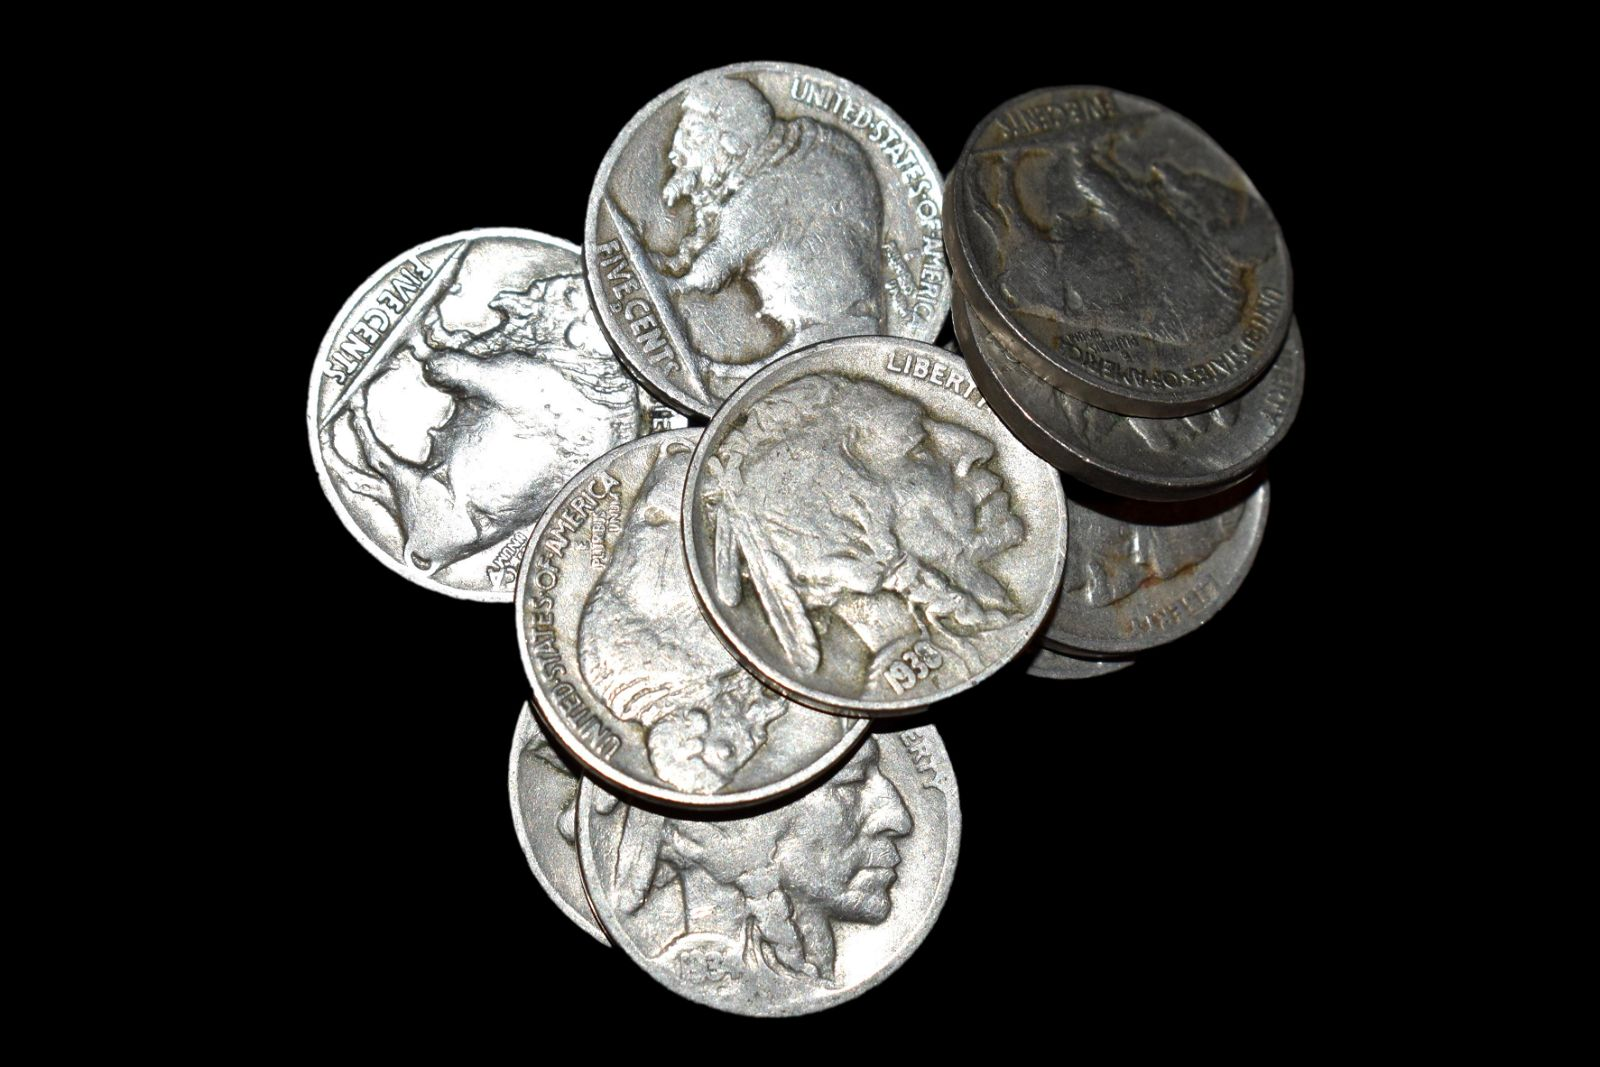 LOT OF 10 BUFFALO NICKELS, ALL FULL DATES, EARLY UNITED